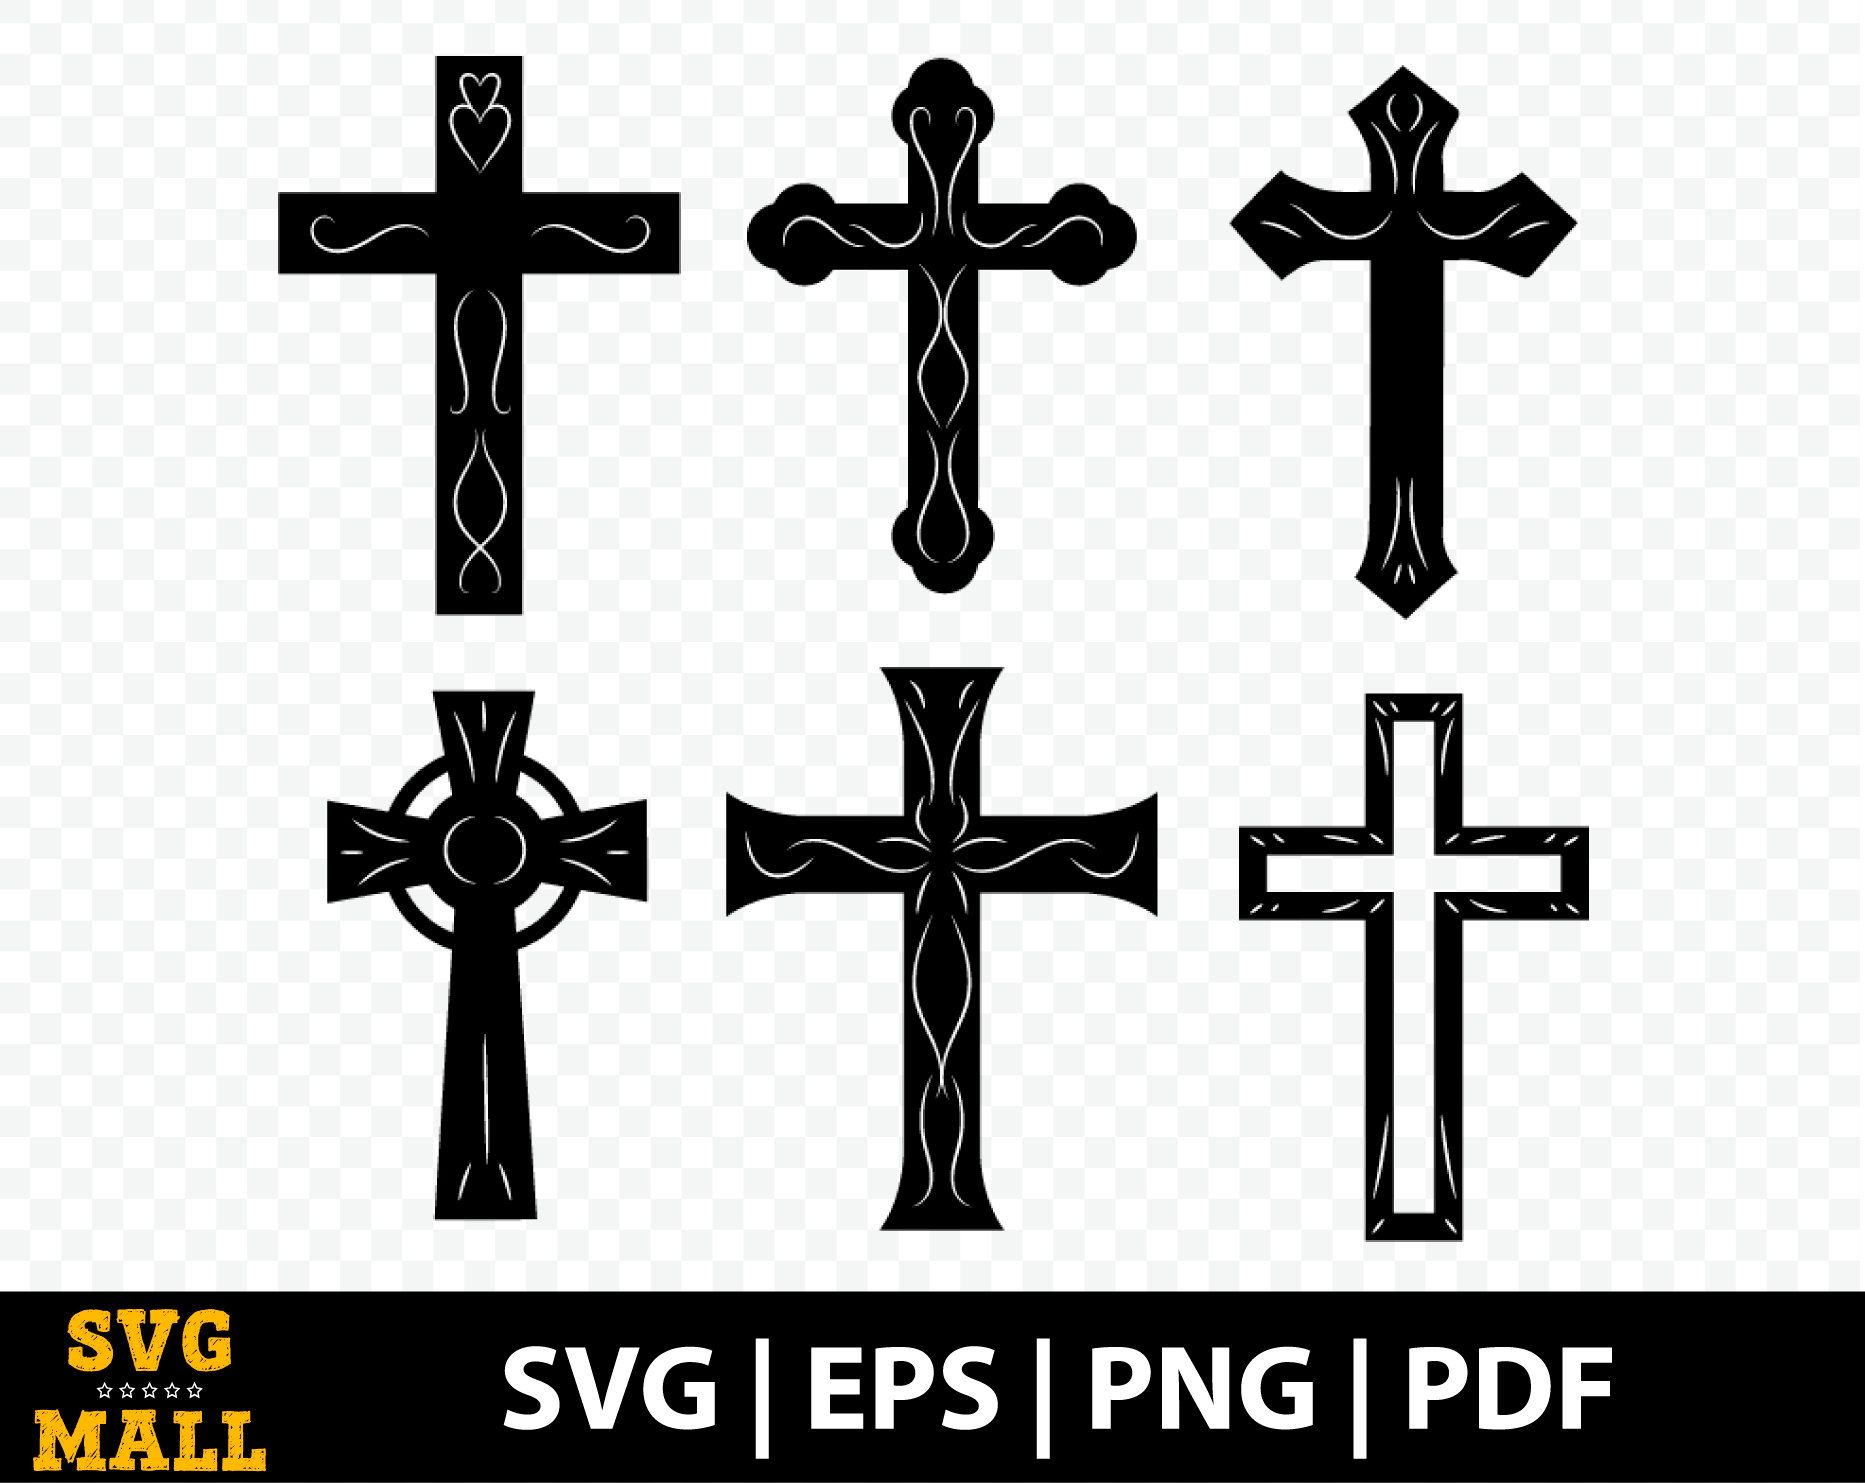 Cross Svg Christian Crosses Clipart Filesolar Cell Equivalent Circuitsvg Wikimedia Commons Decal Silhouette